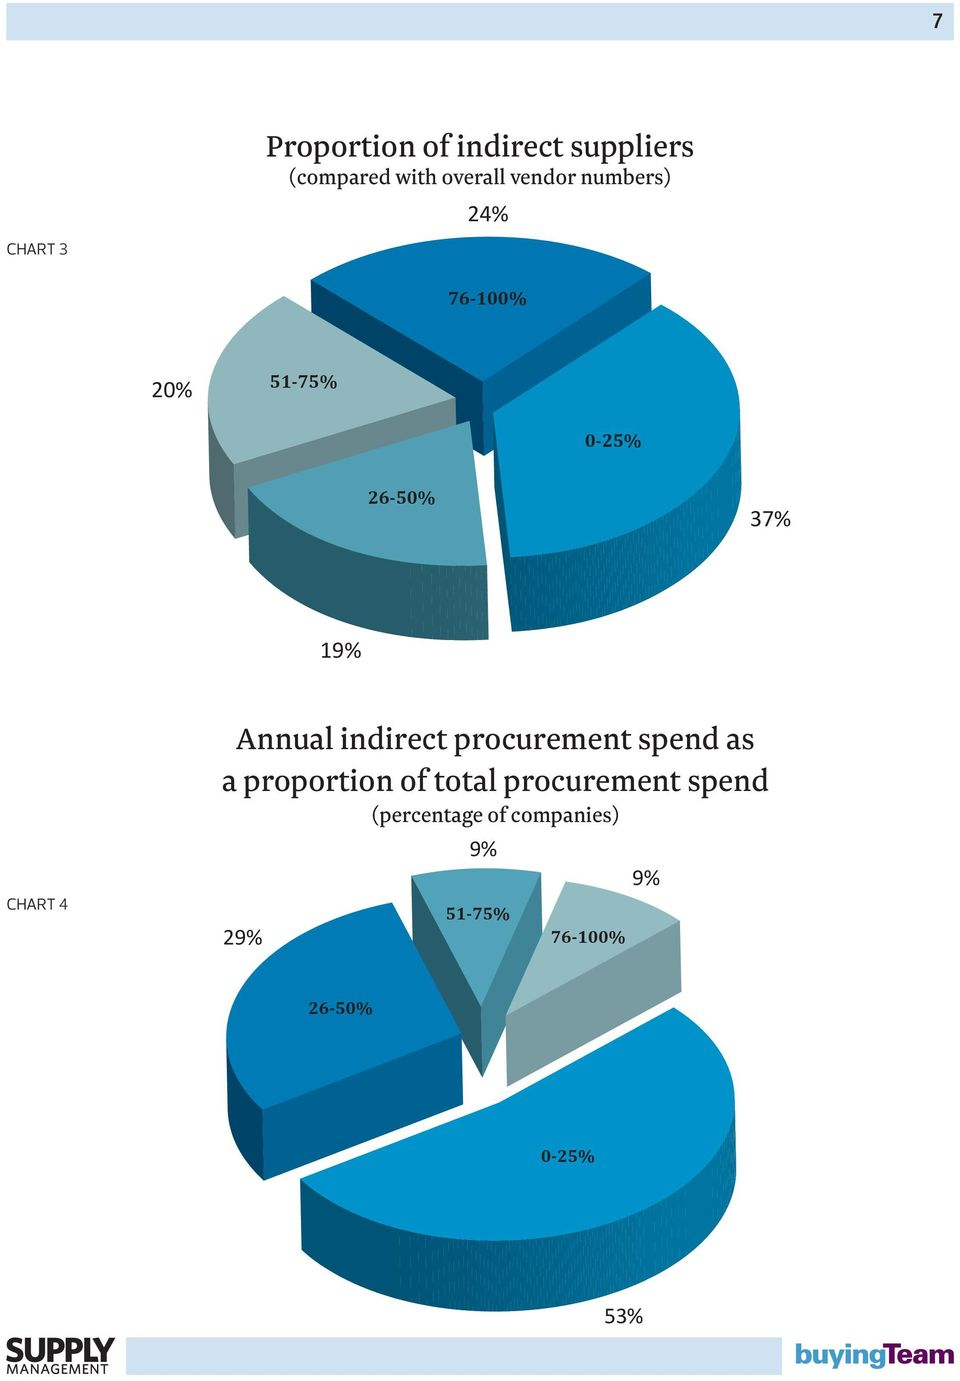 Annual indirect procurement spend as a proportion of total